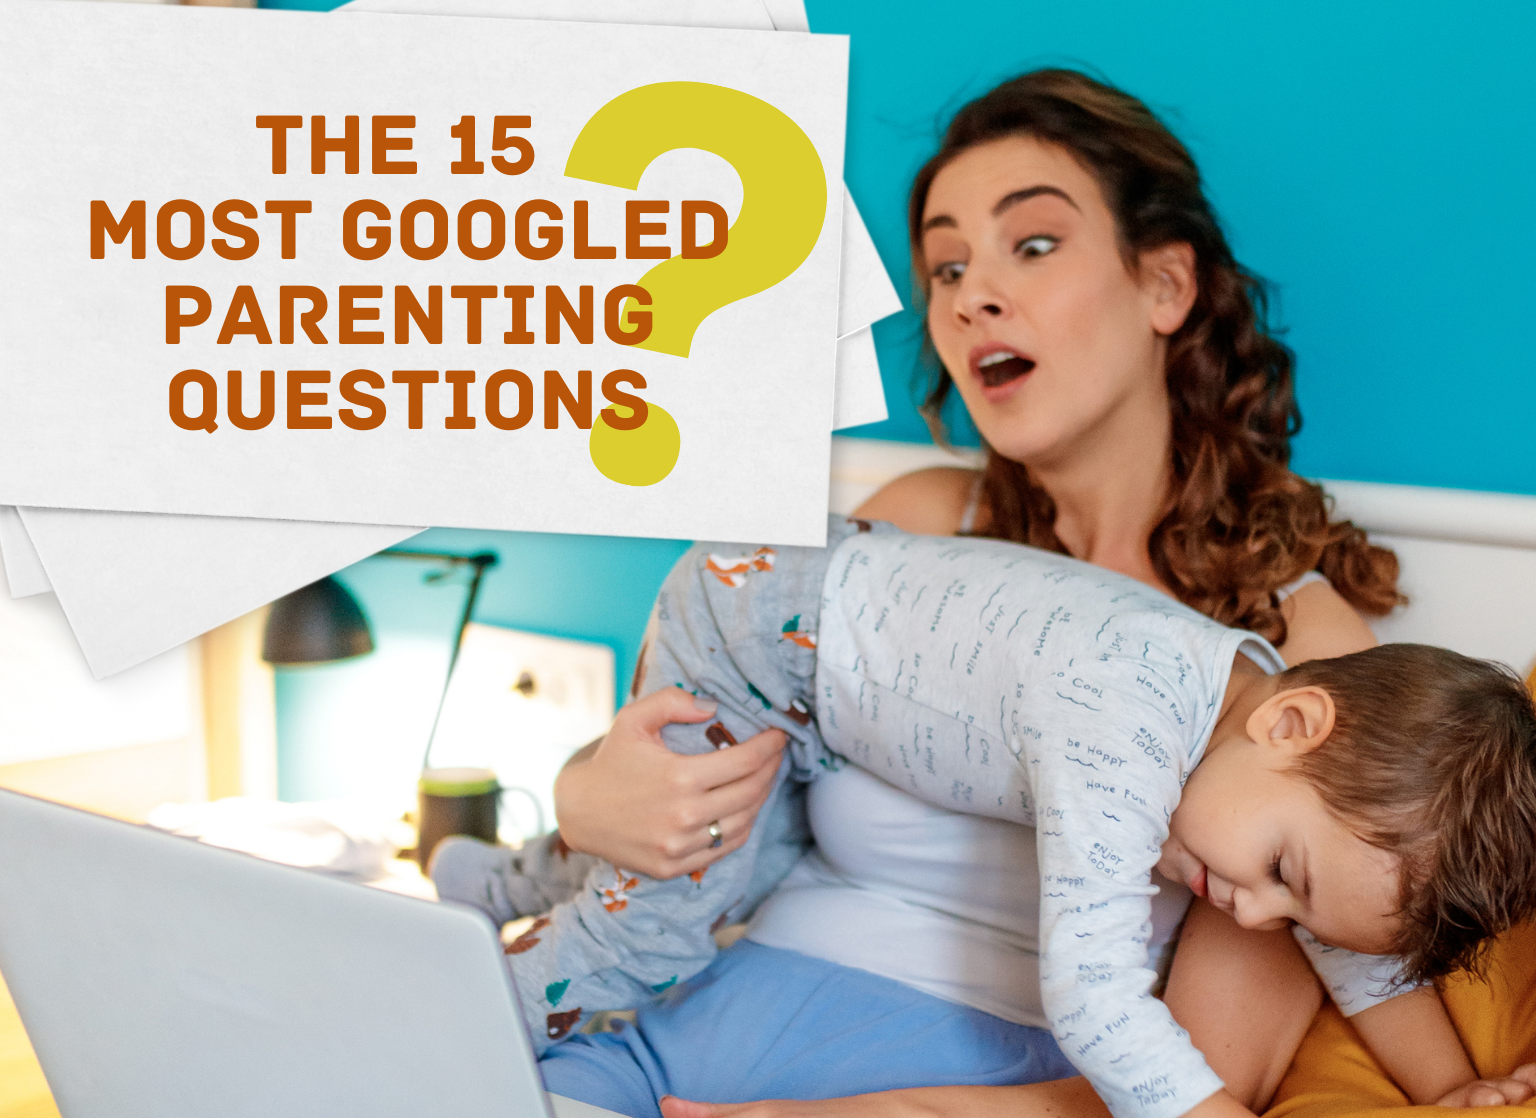 Most googled parenting questions - featured